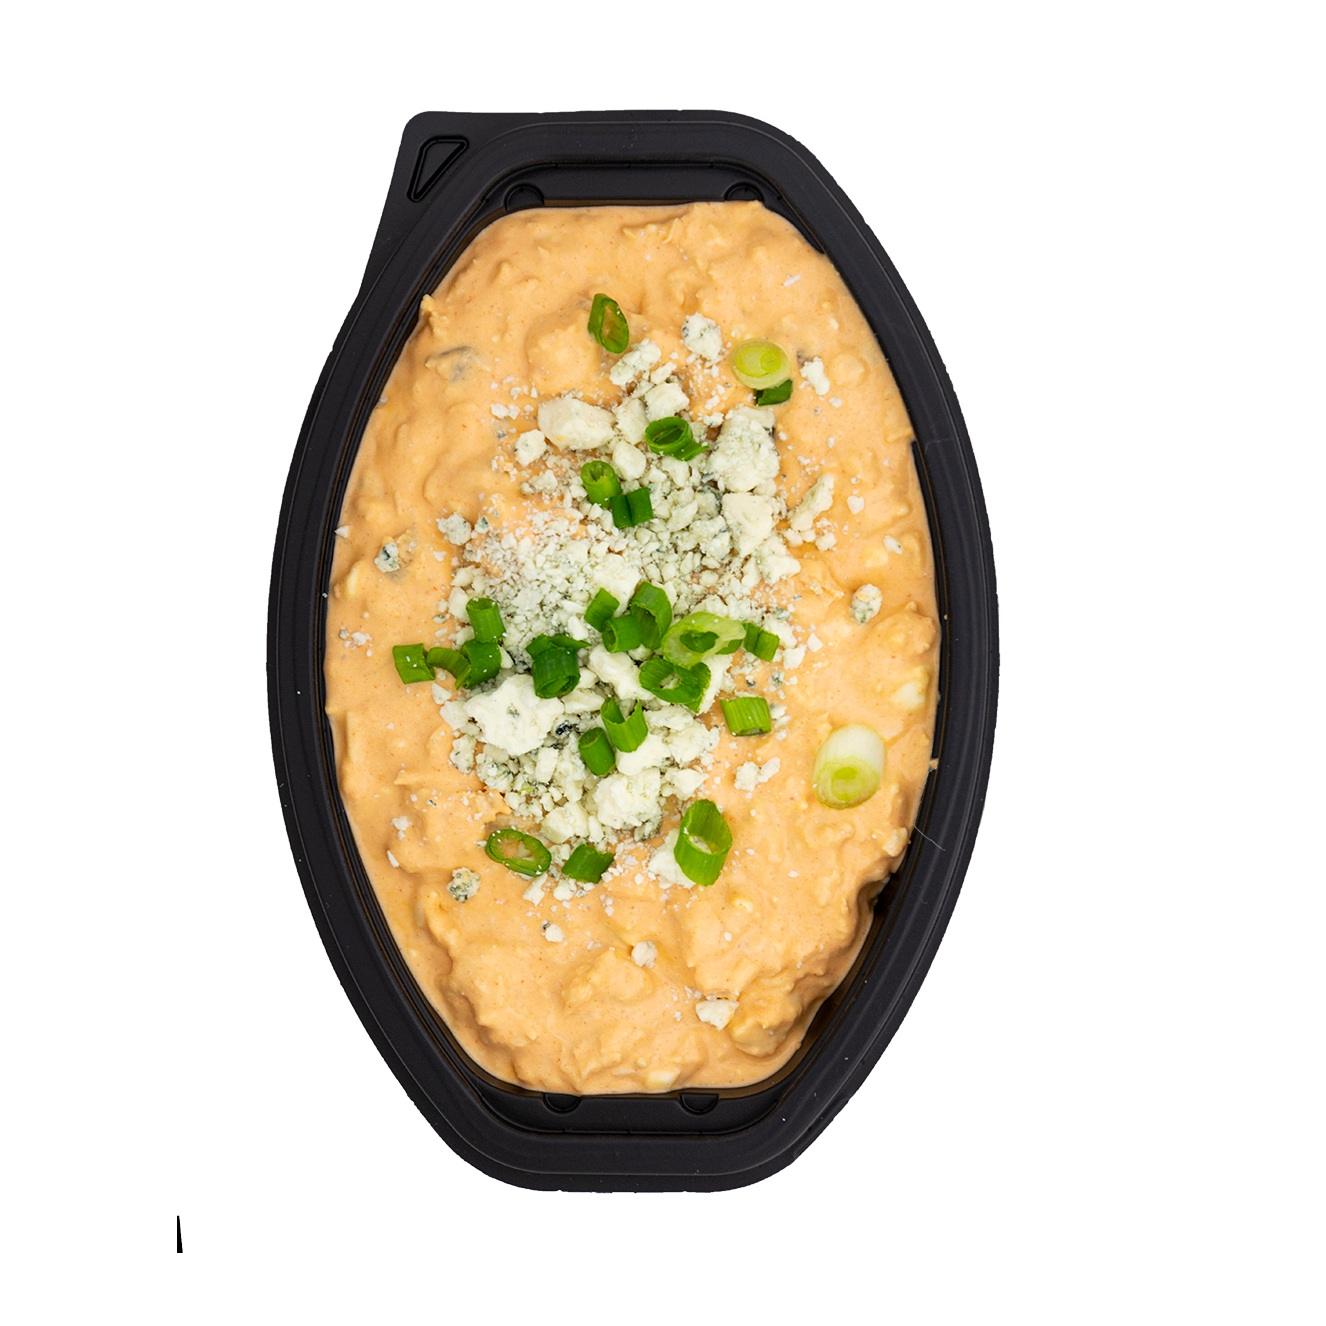 BUFFALO CHICKEN DIP - 14 OZ. — 80449